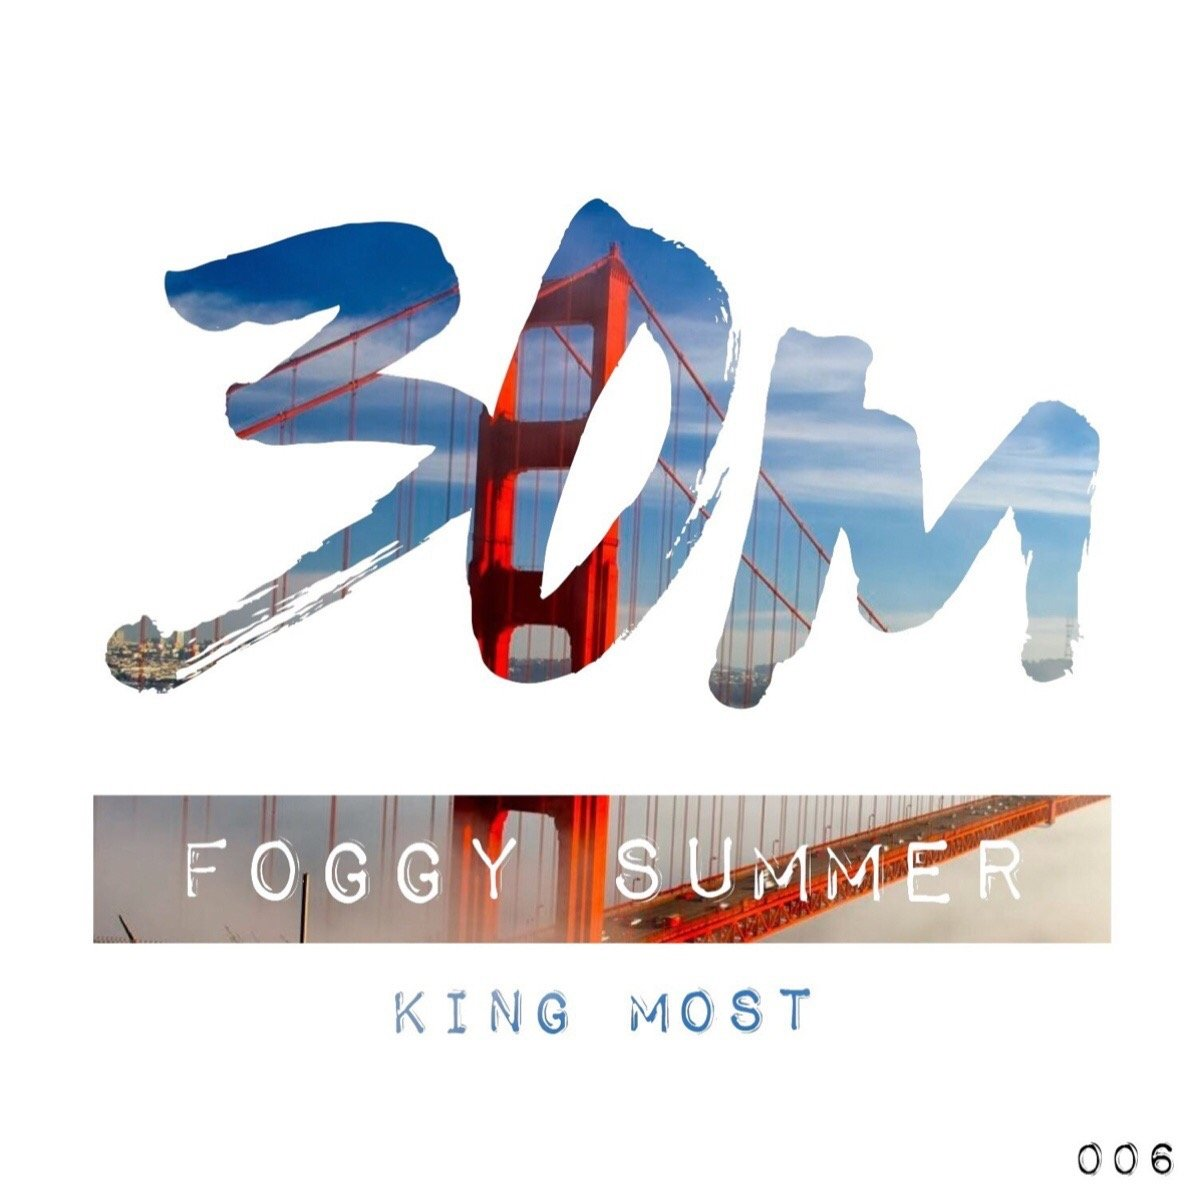 006: Foggy Summer - King Most (San Francisco)